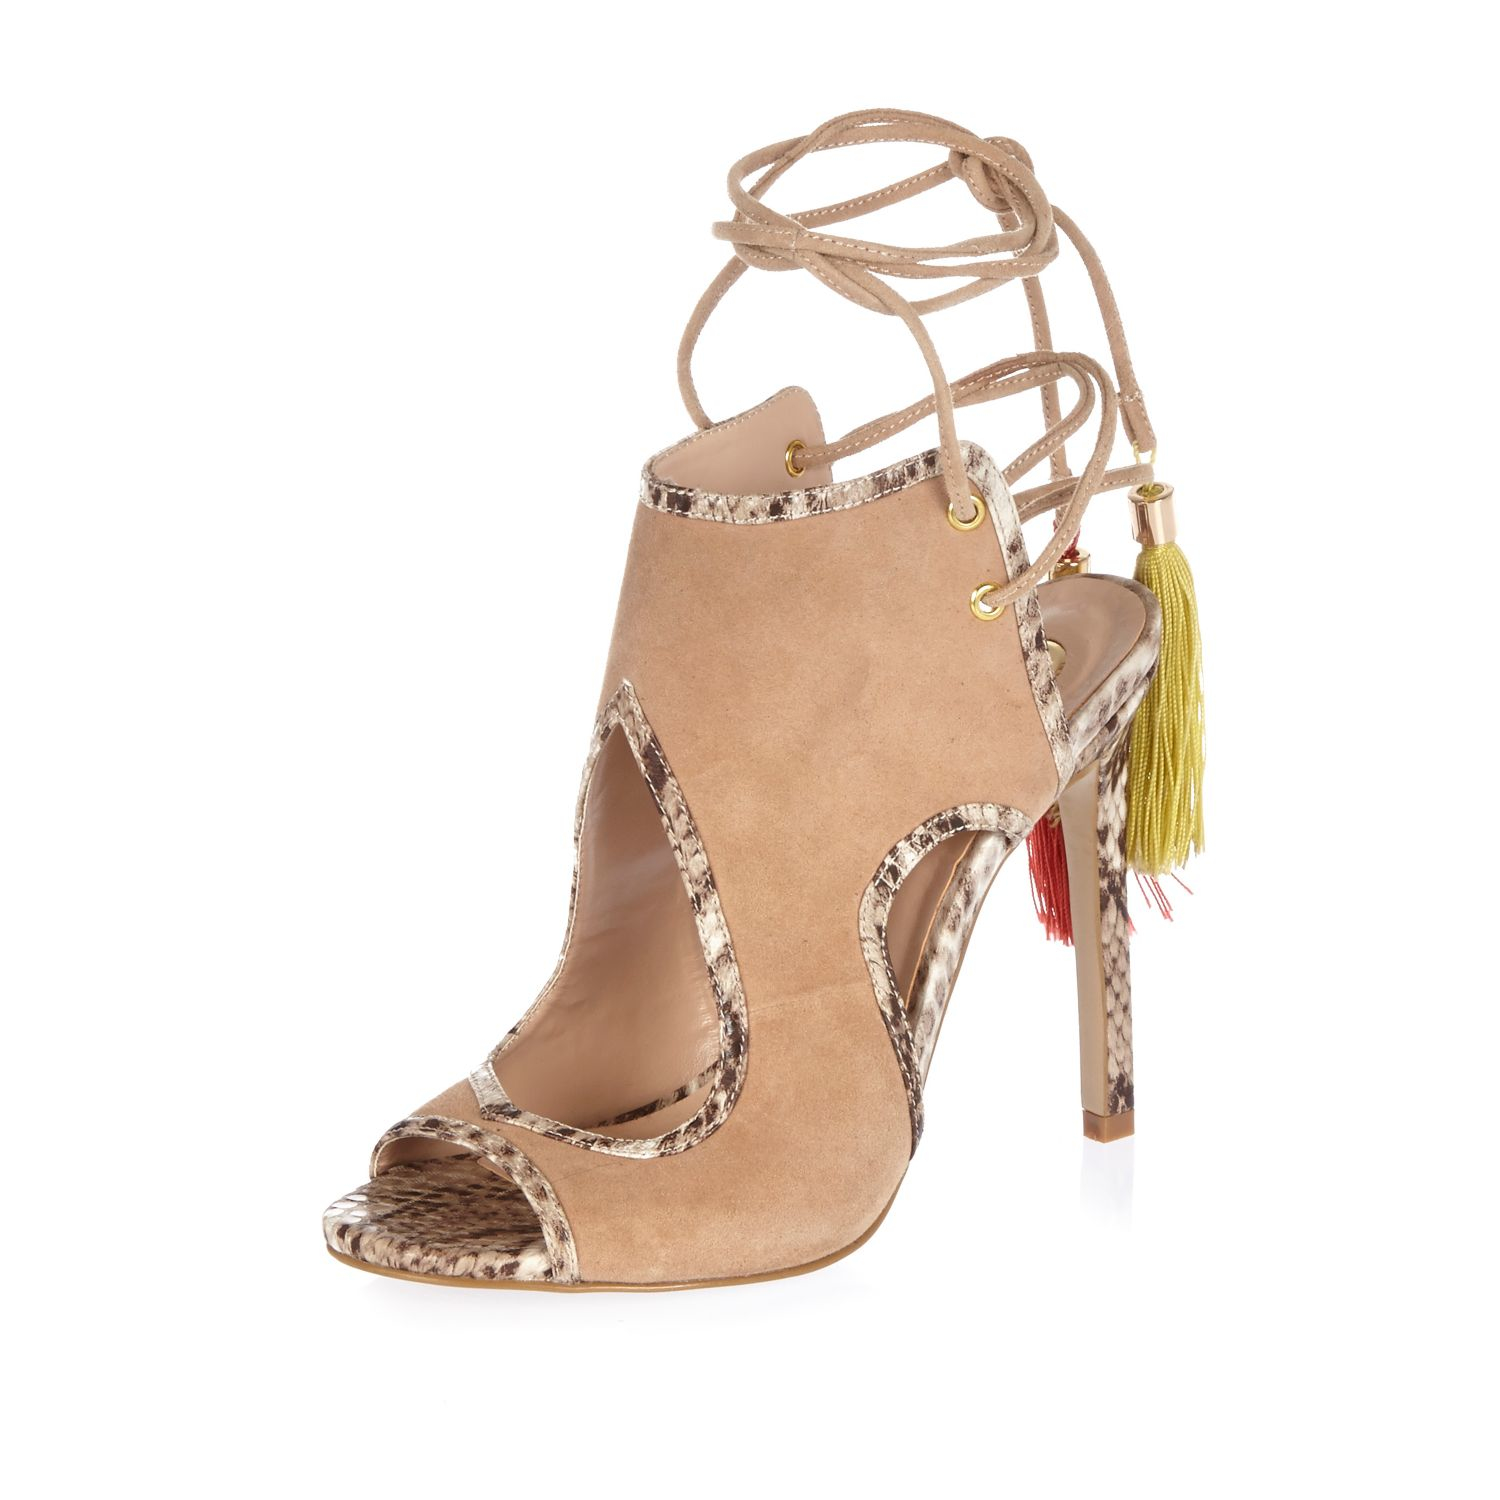 044da8a1e41994 River Island Light Brown Suede Tassel Lace-up Heels in Brown - Lyst